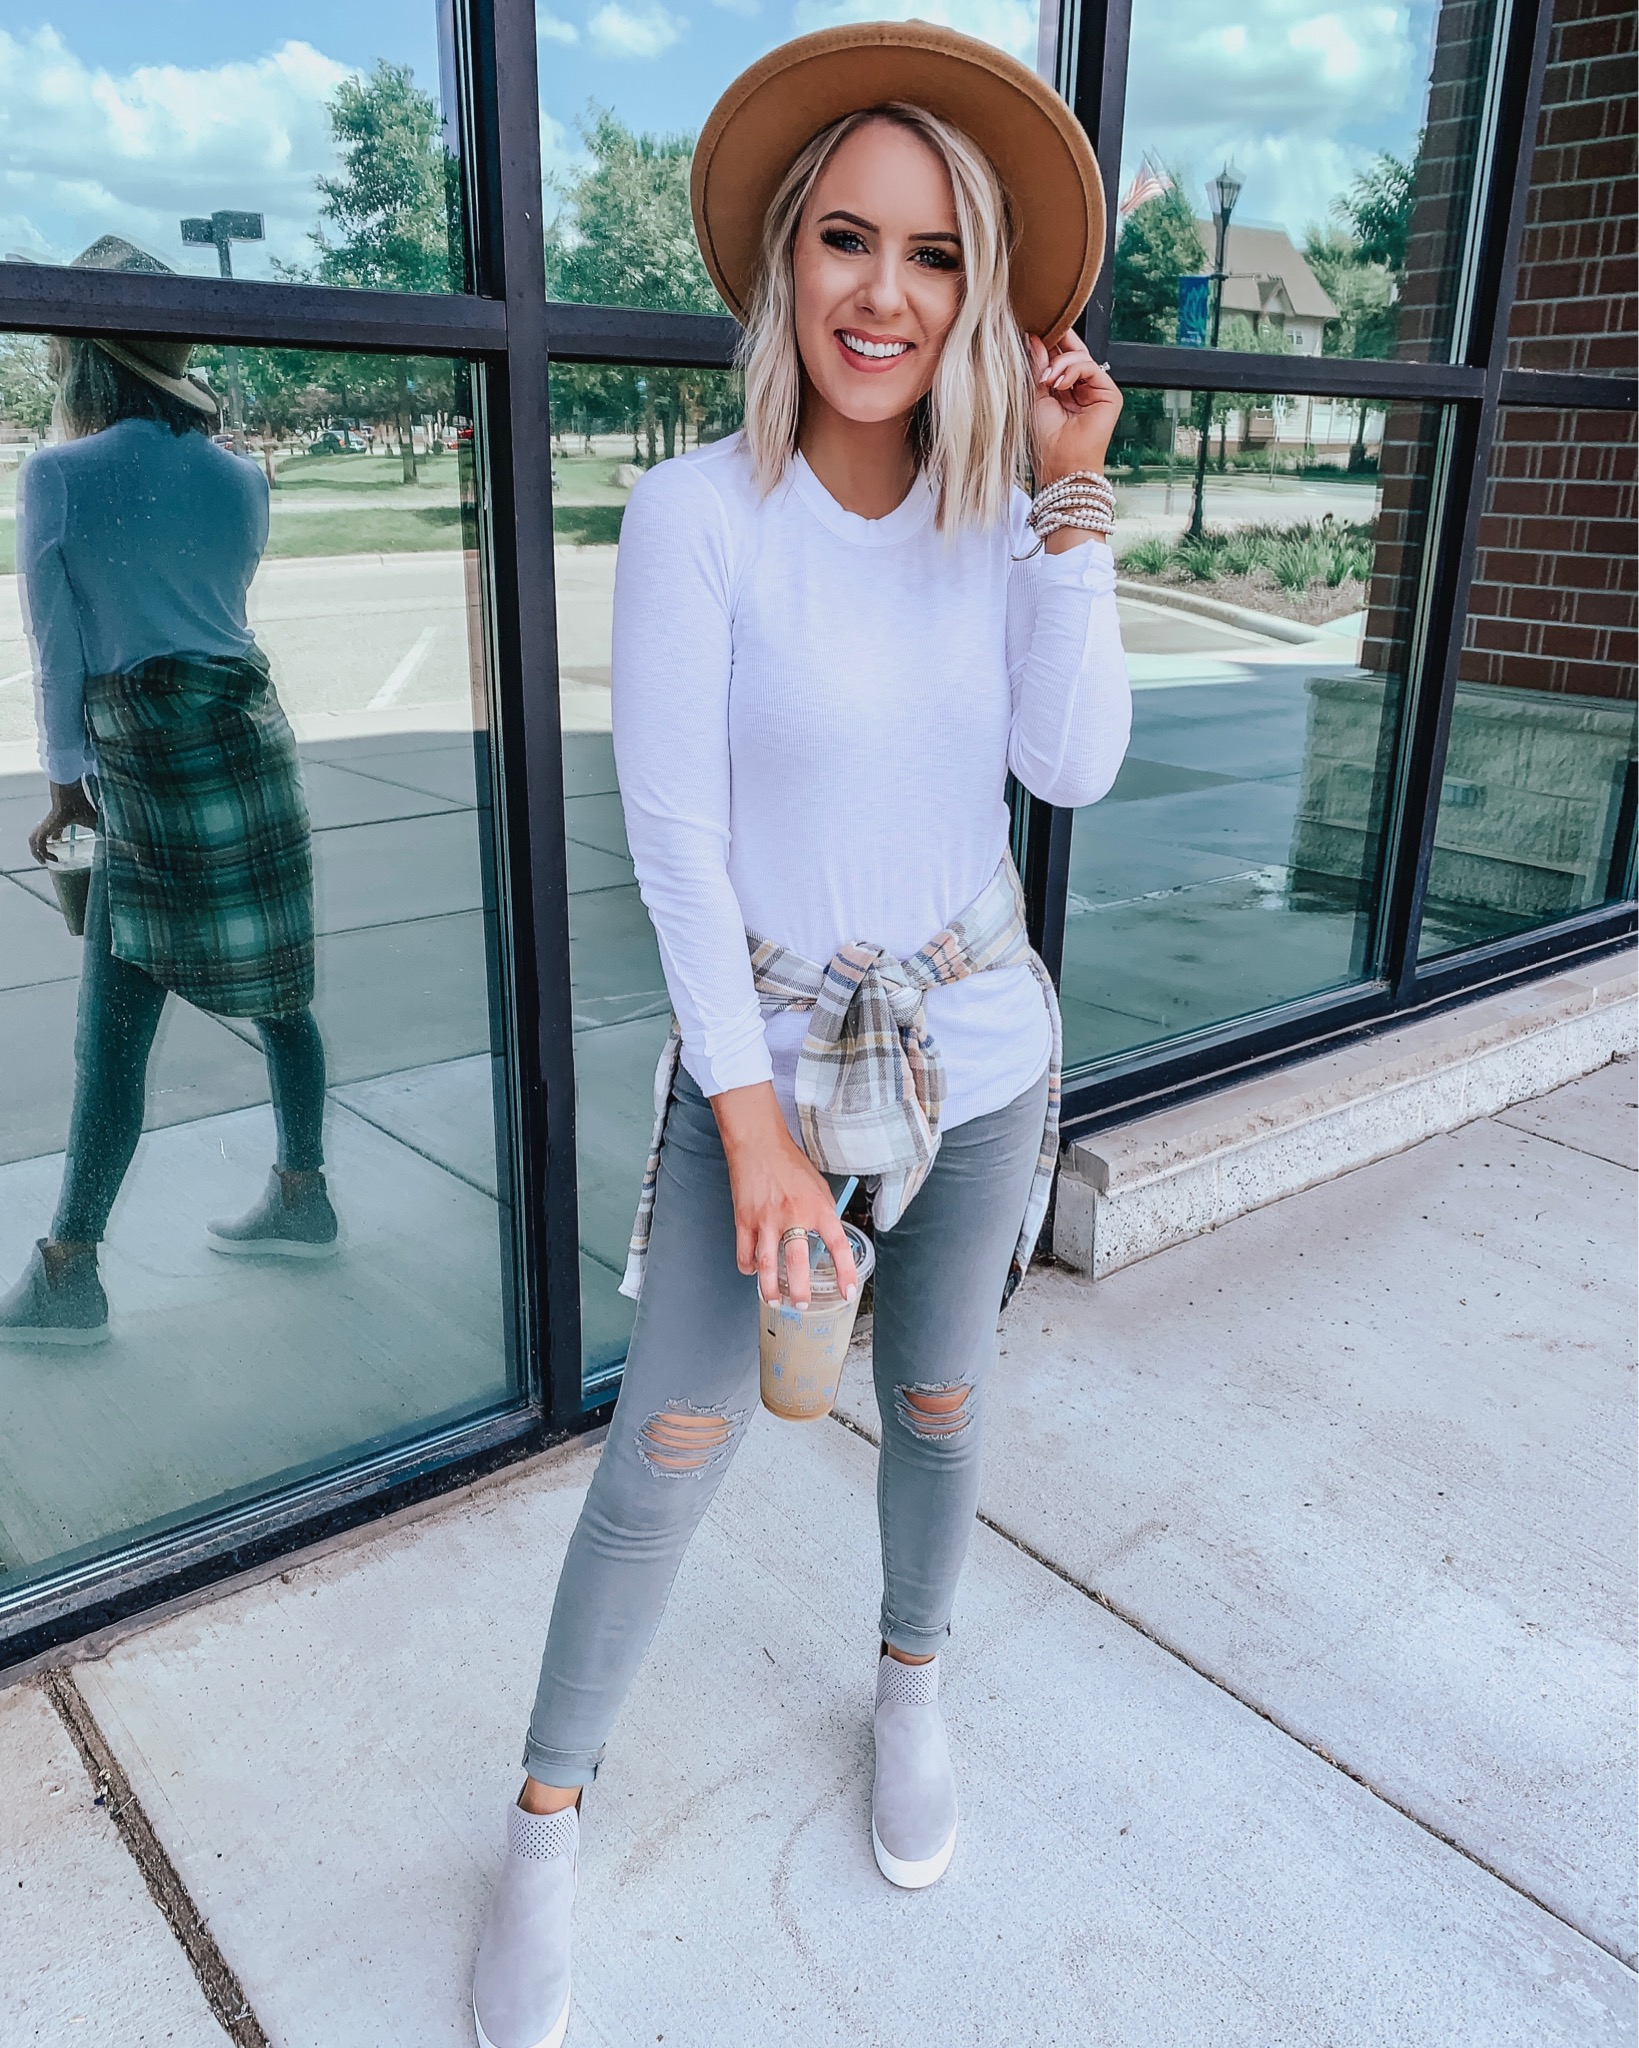 Affordable Fall Transition Outfits | Style Blogger Lauren Meyer shares Affordable Fall Transition Casual Outfits